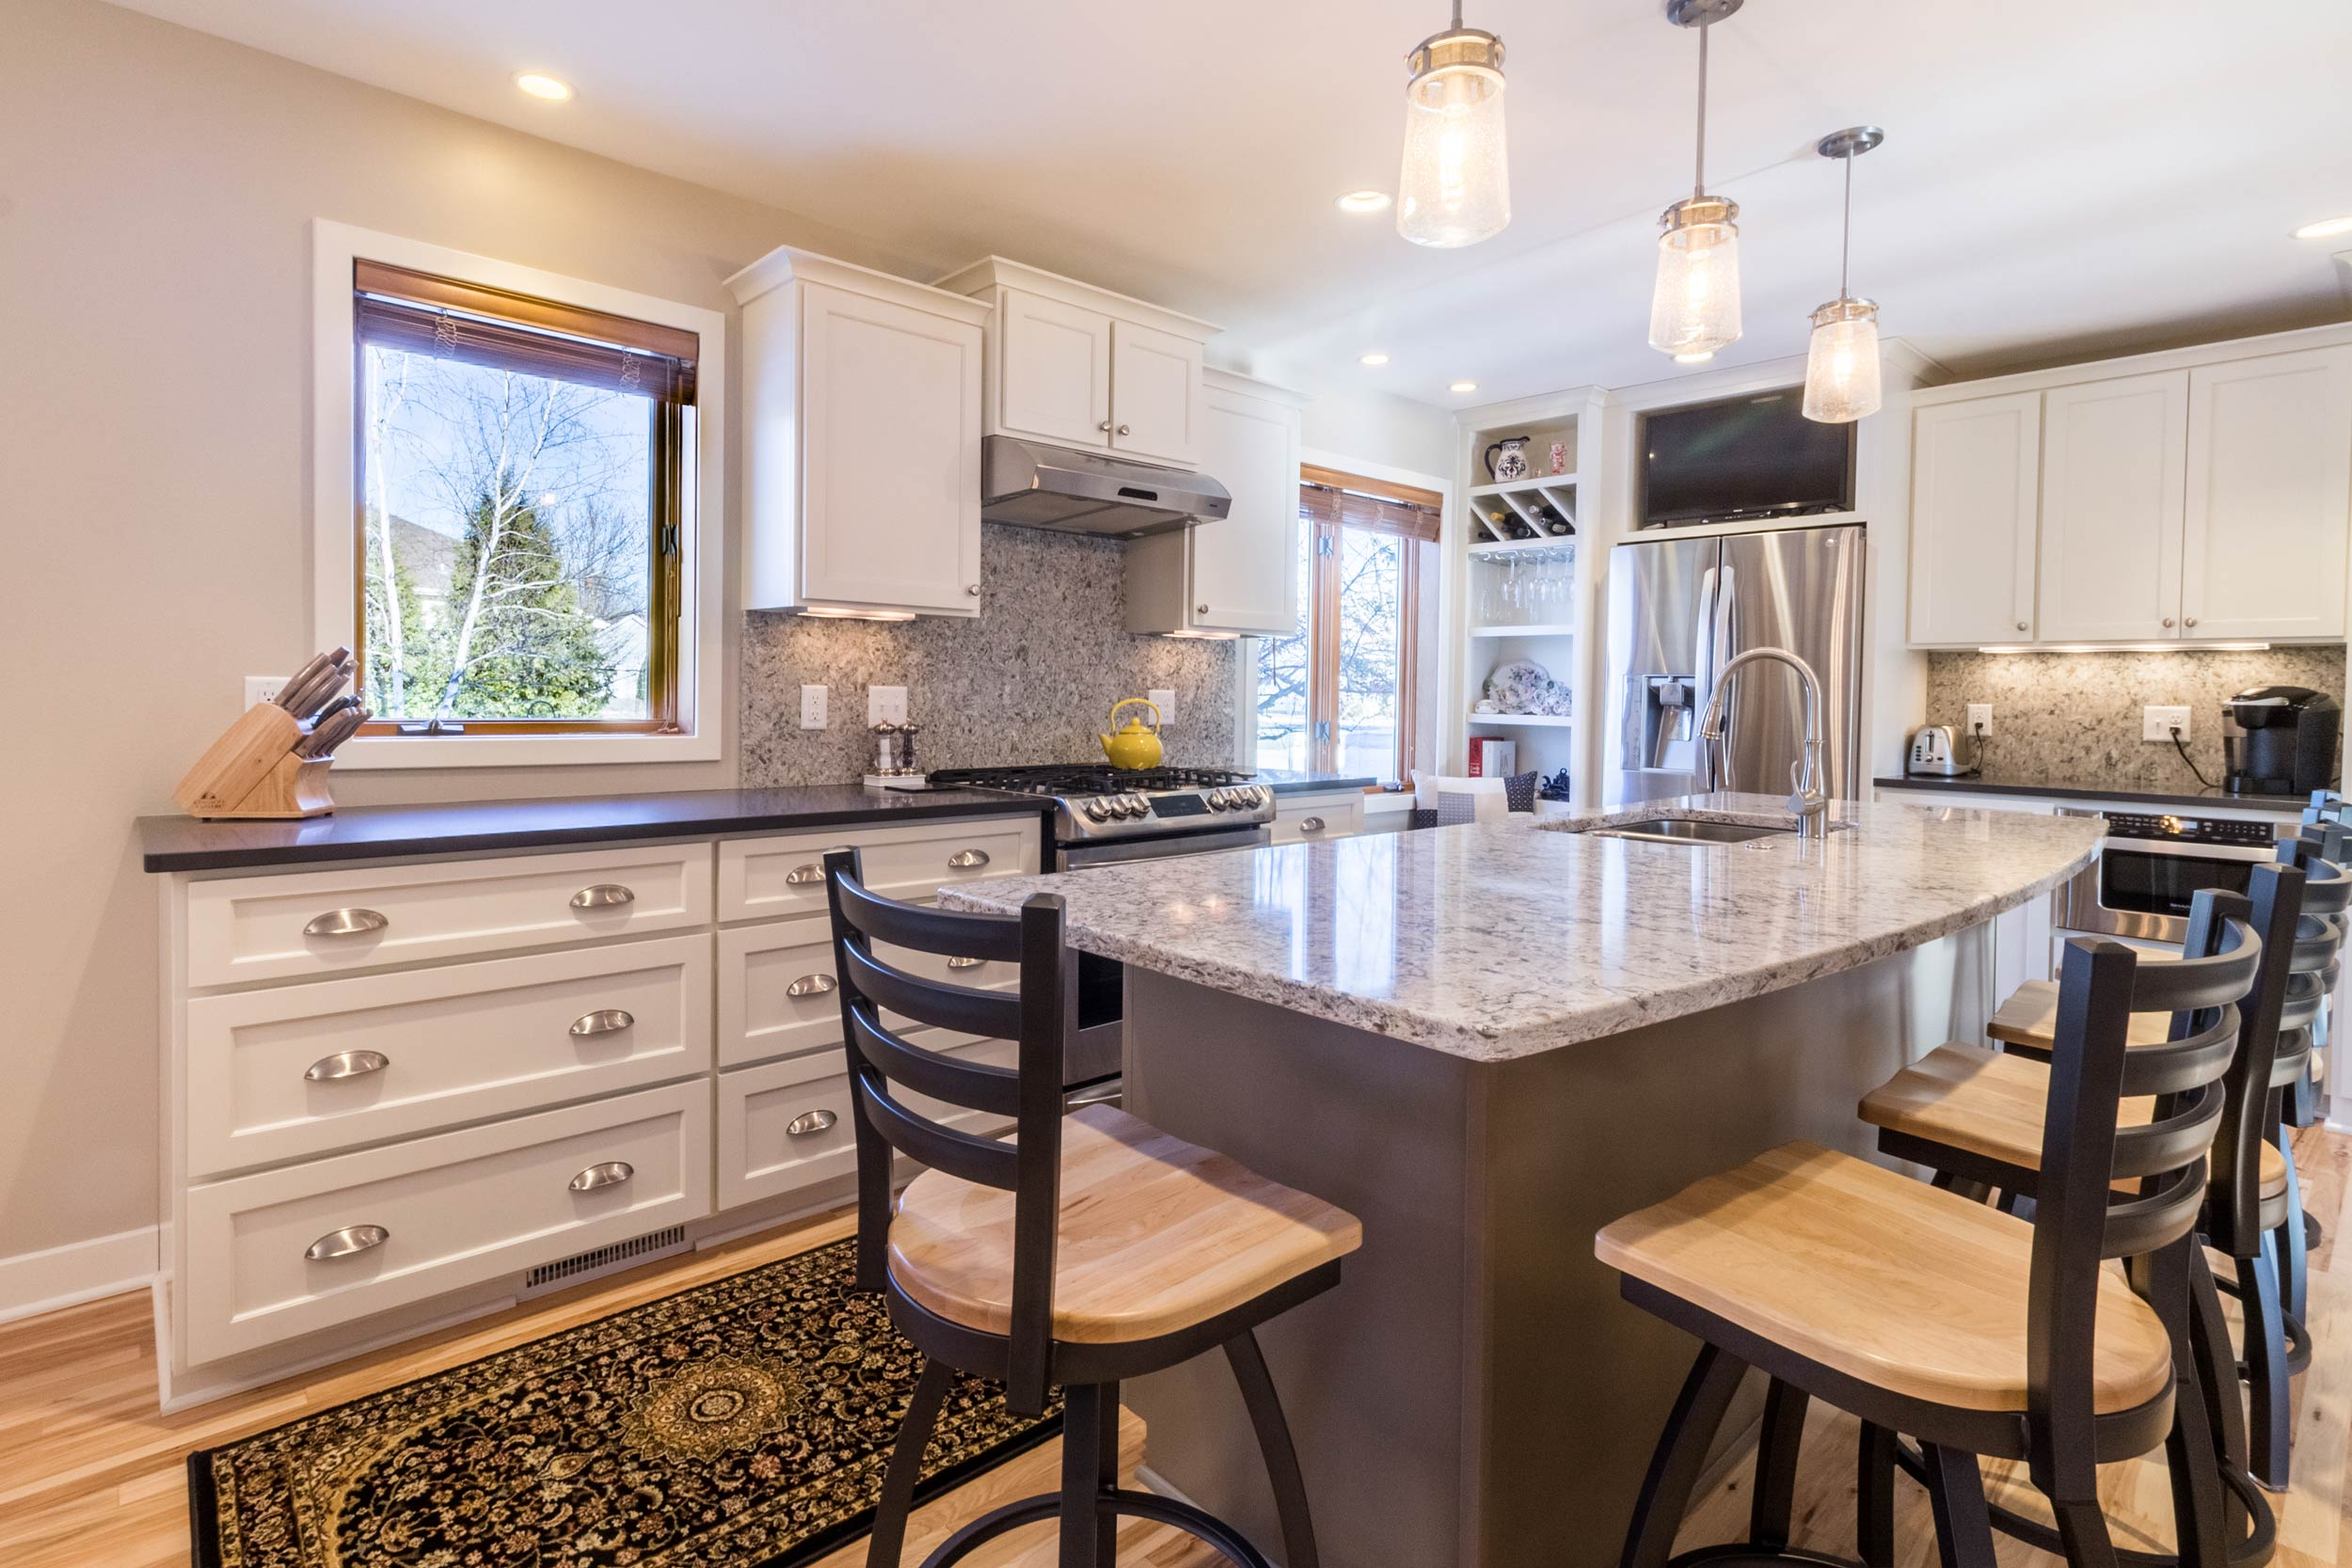 10 Must Have Upgrades For Your Kitchen Remodeling Project